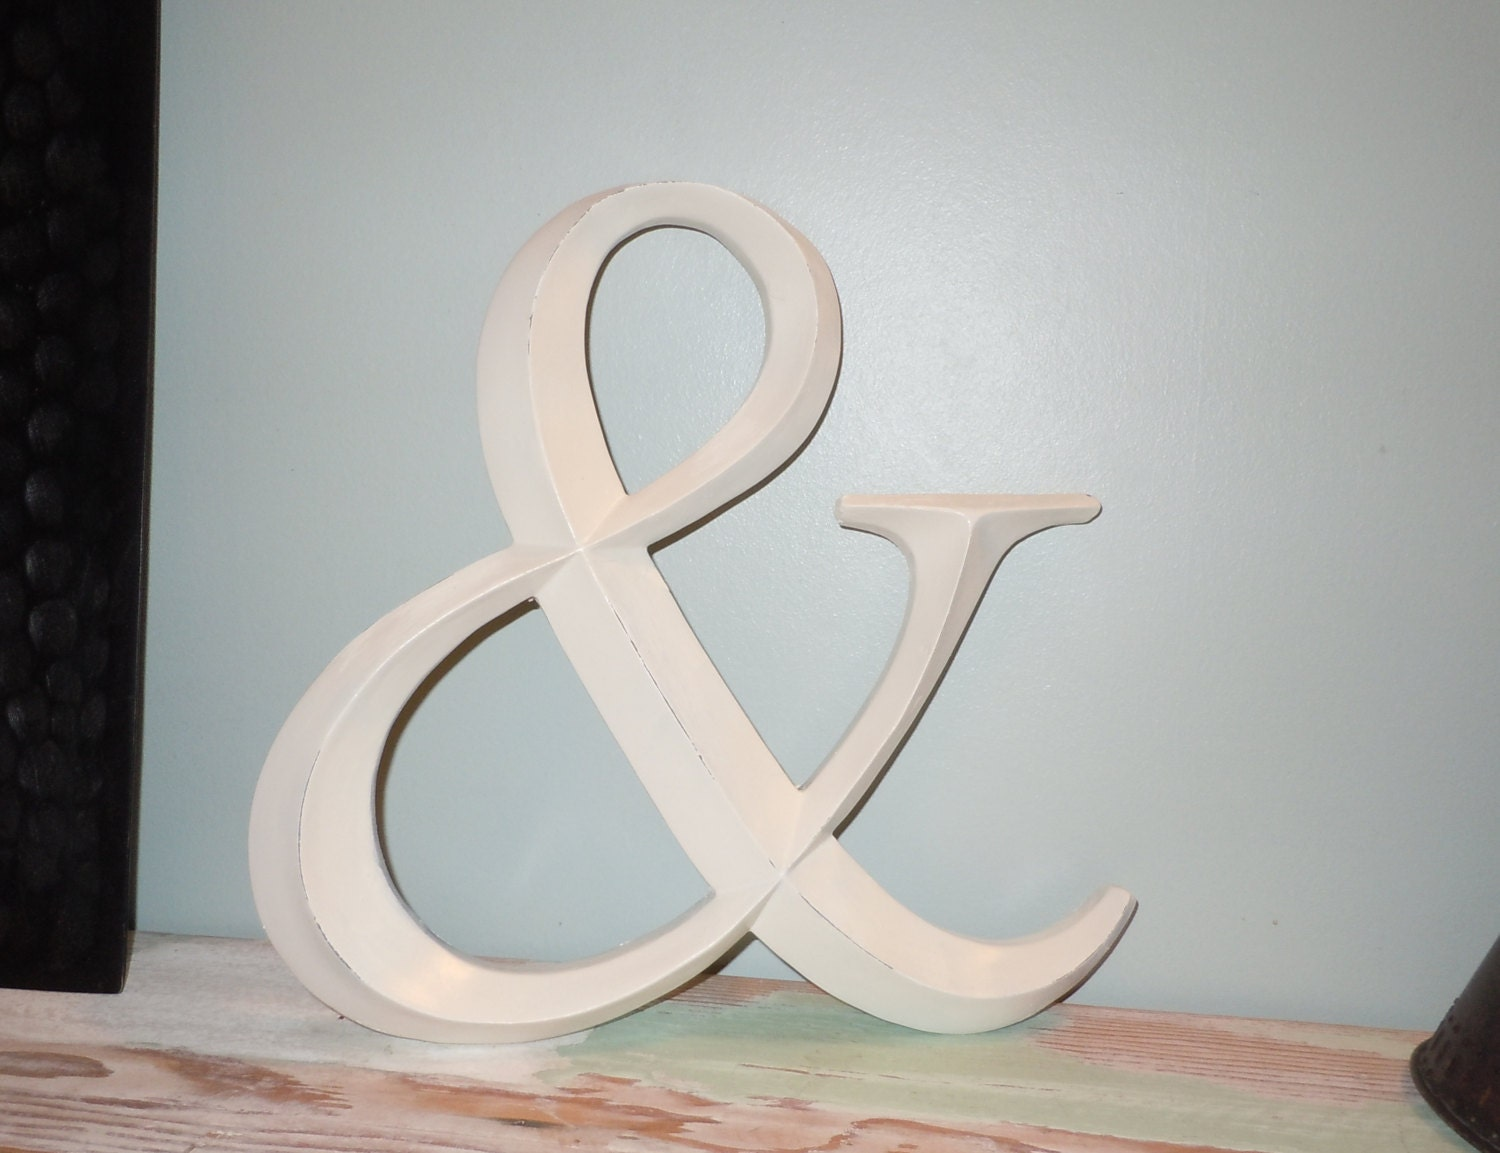 Ampersand wall decor wedding decor symbol by for Ampersand decor